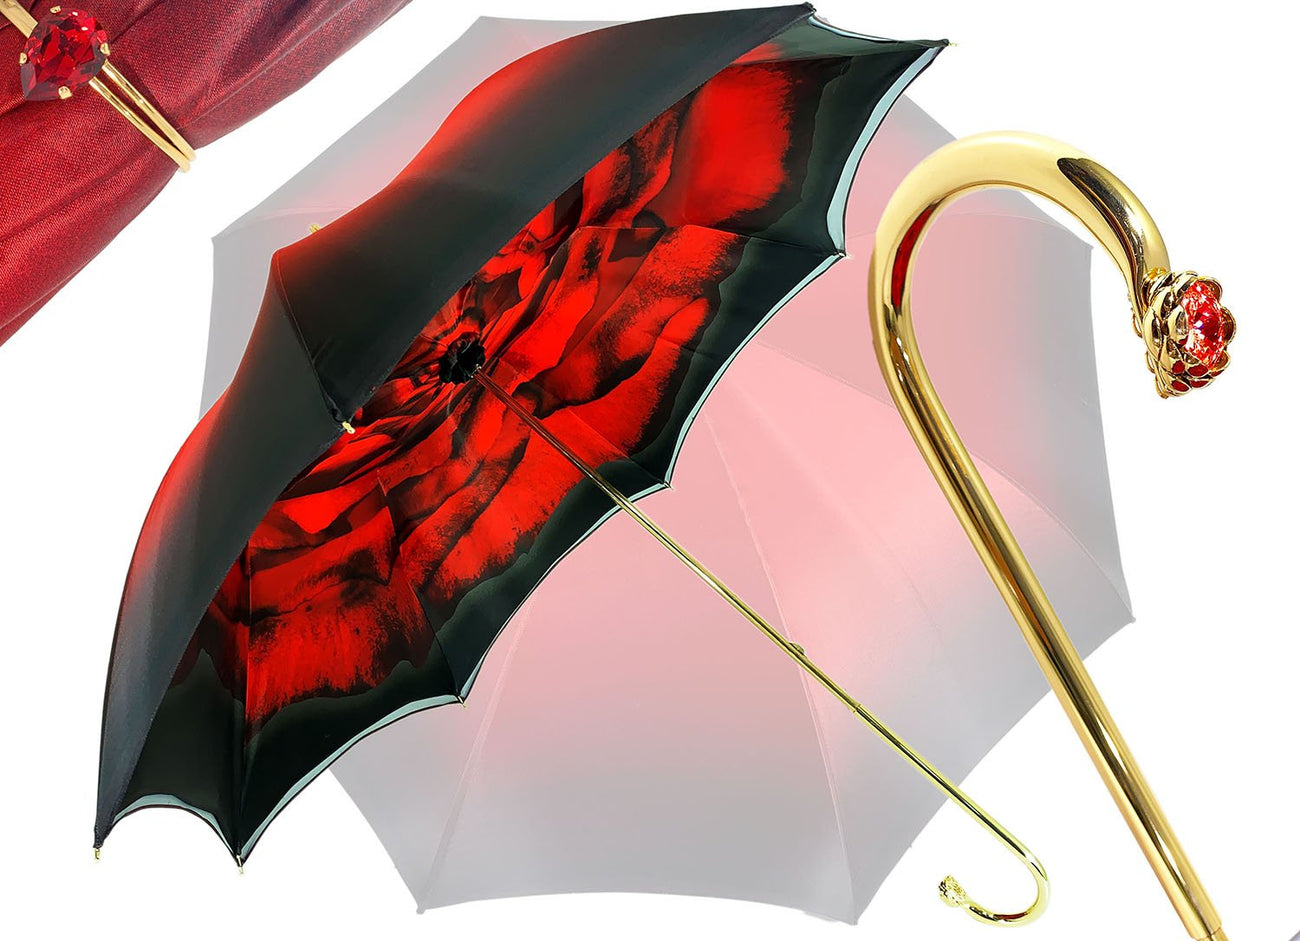 ROSE UMBRELLA